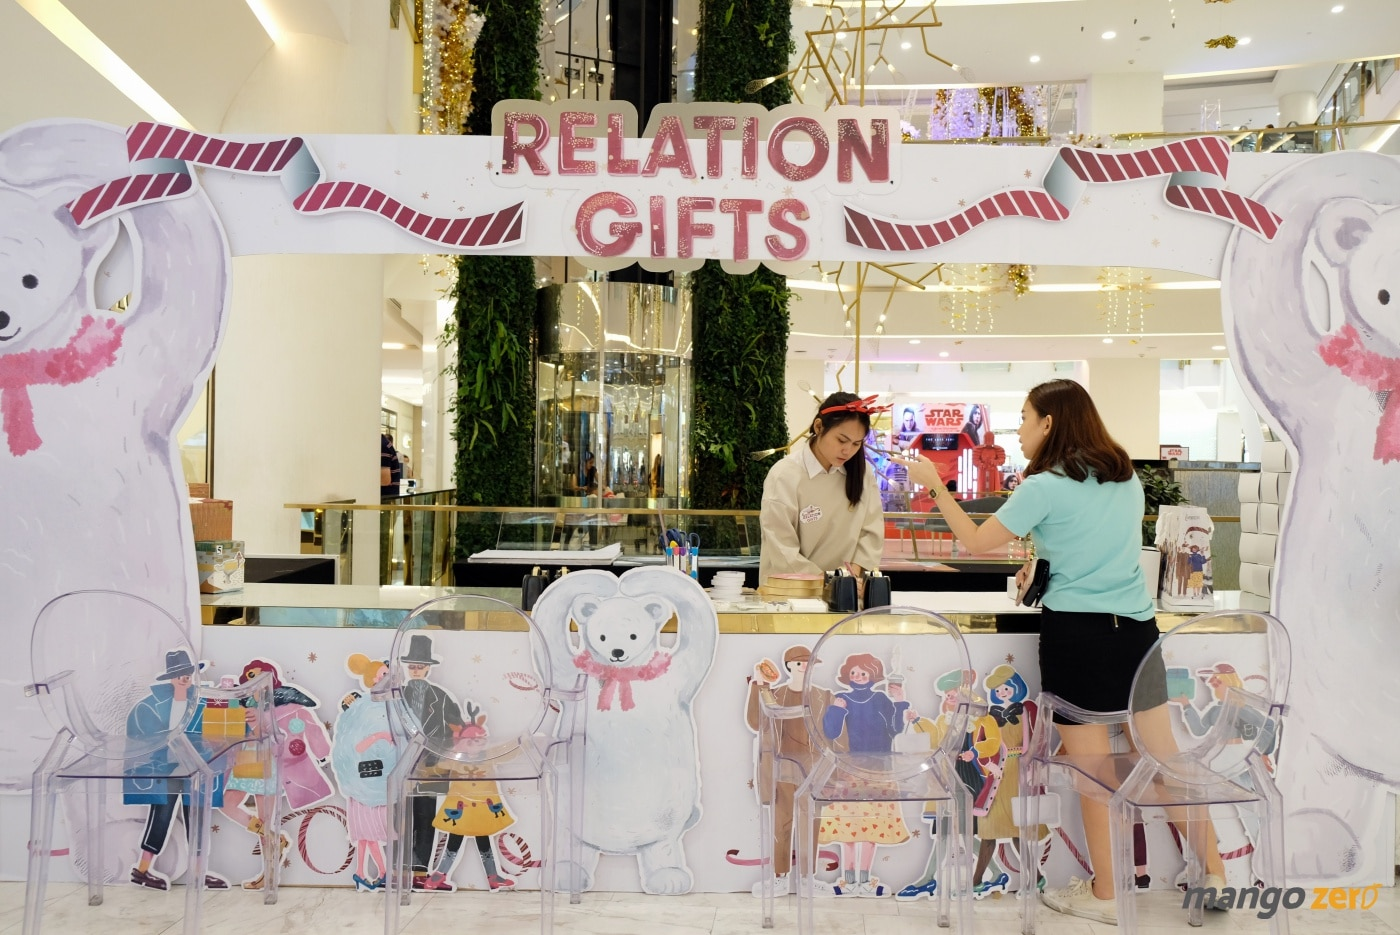 gift-wrapping-paragon-emporium-the-mall-38